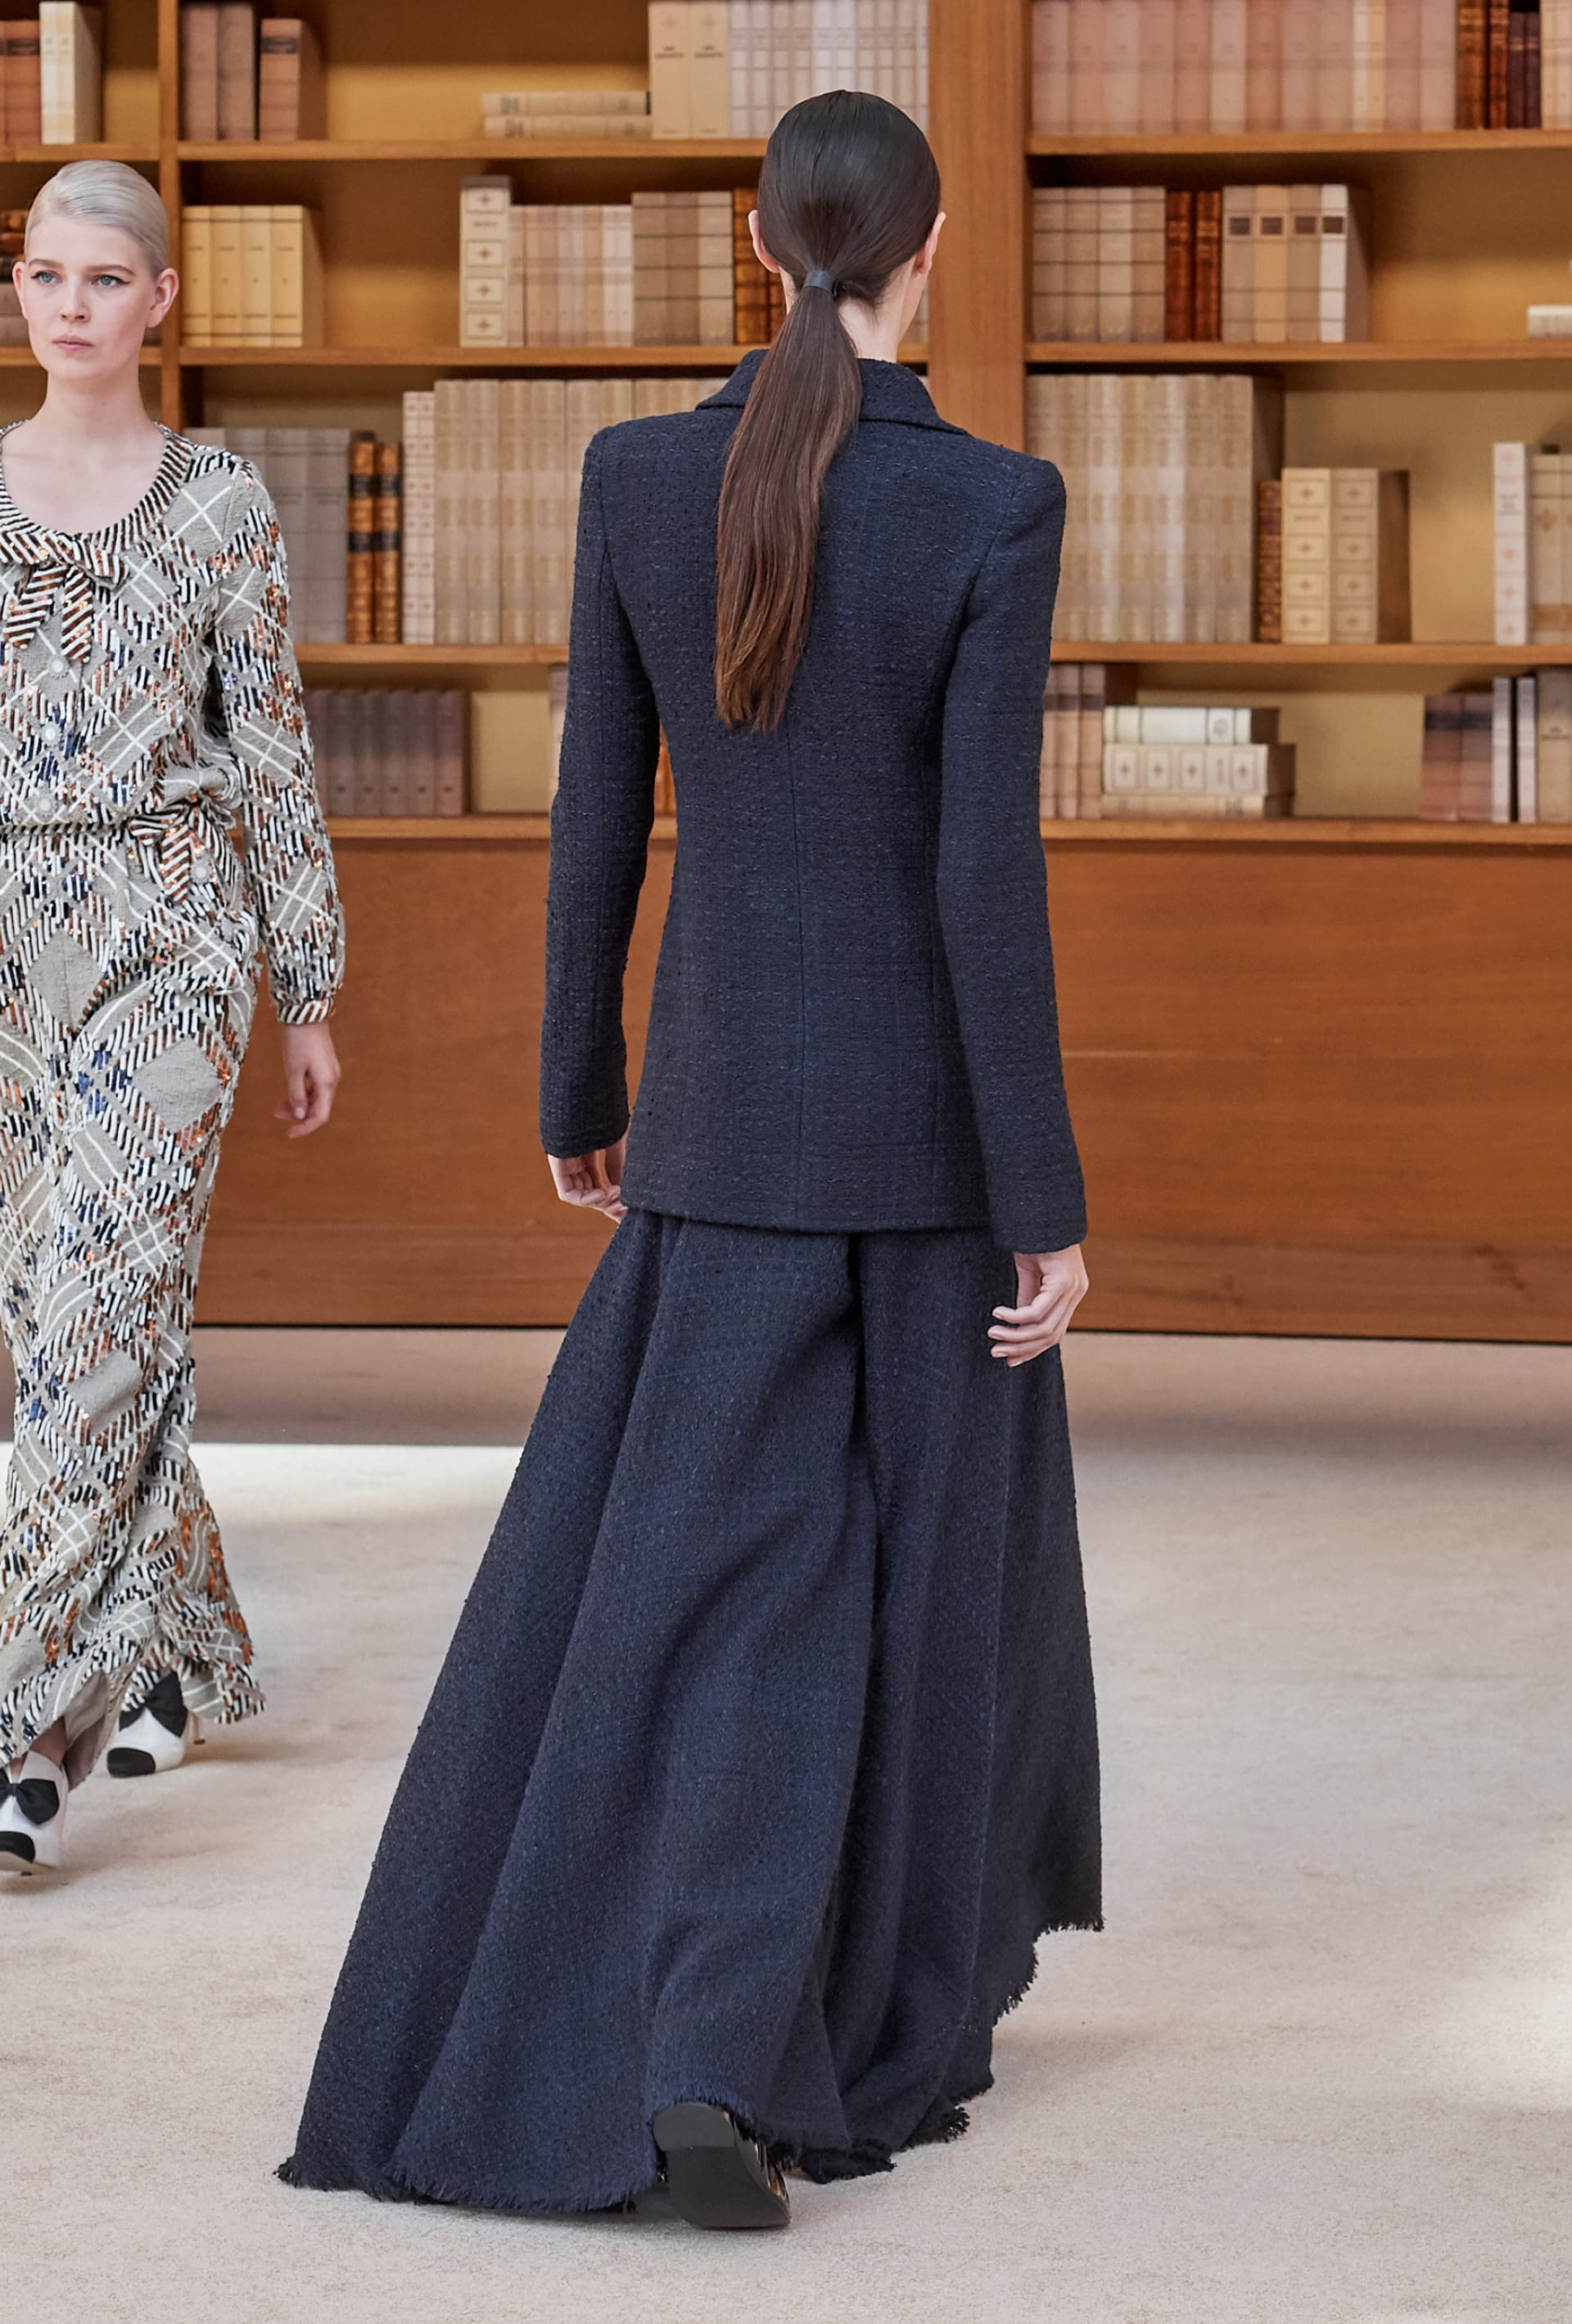 View 5 - Look 15 - Fall-Winter 2019/20 Haute-Couture - see full sized version